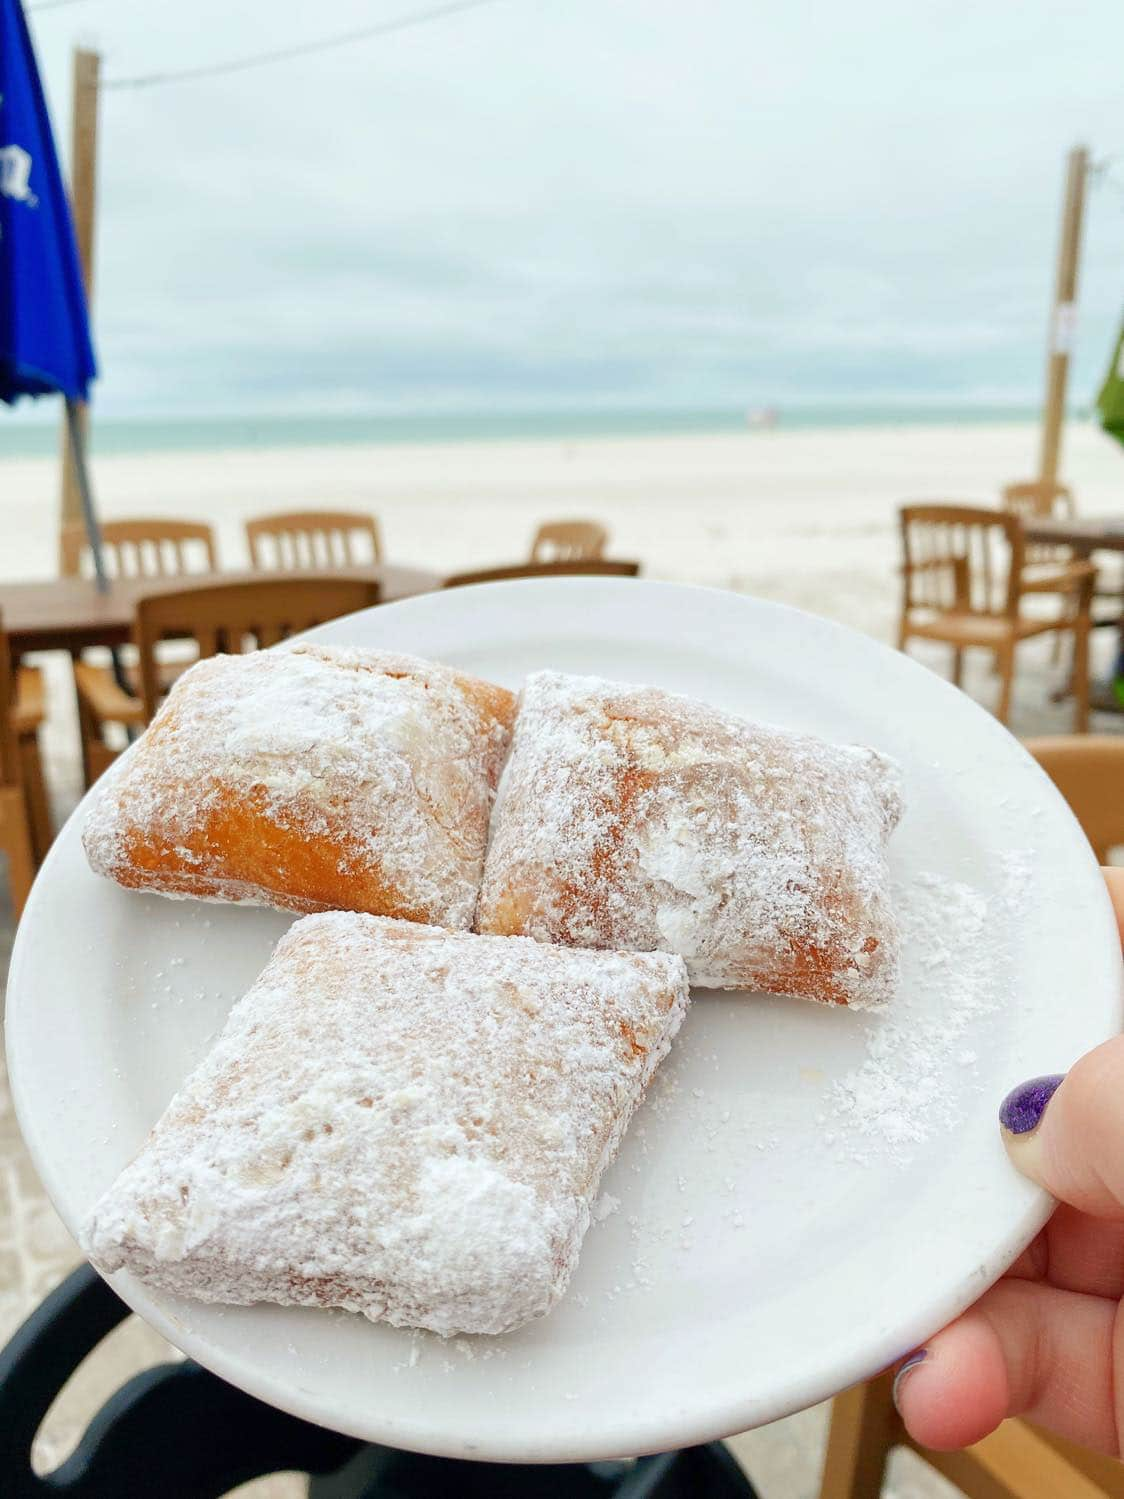 Plate of beignets with beach in the background